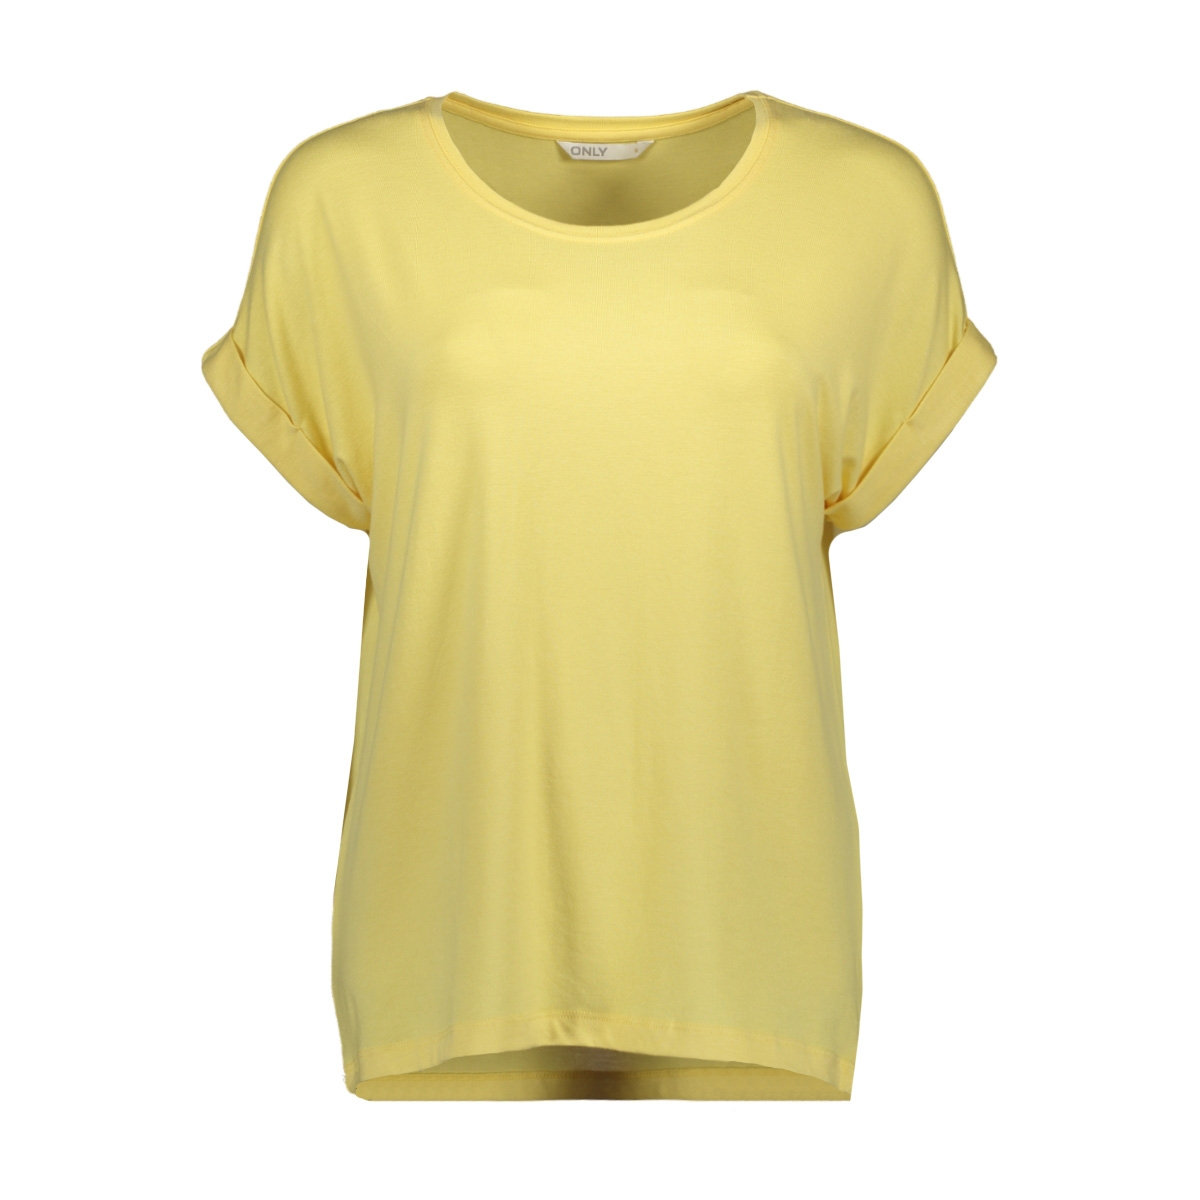 onlmoster s/s o-neck top noos jrs 15106662 only t-shirt pineapple slice